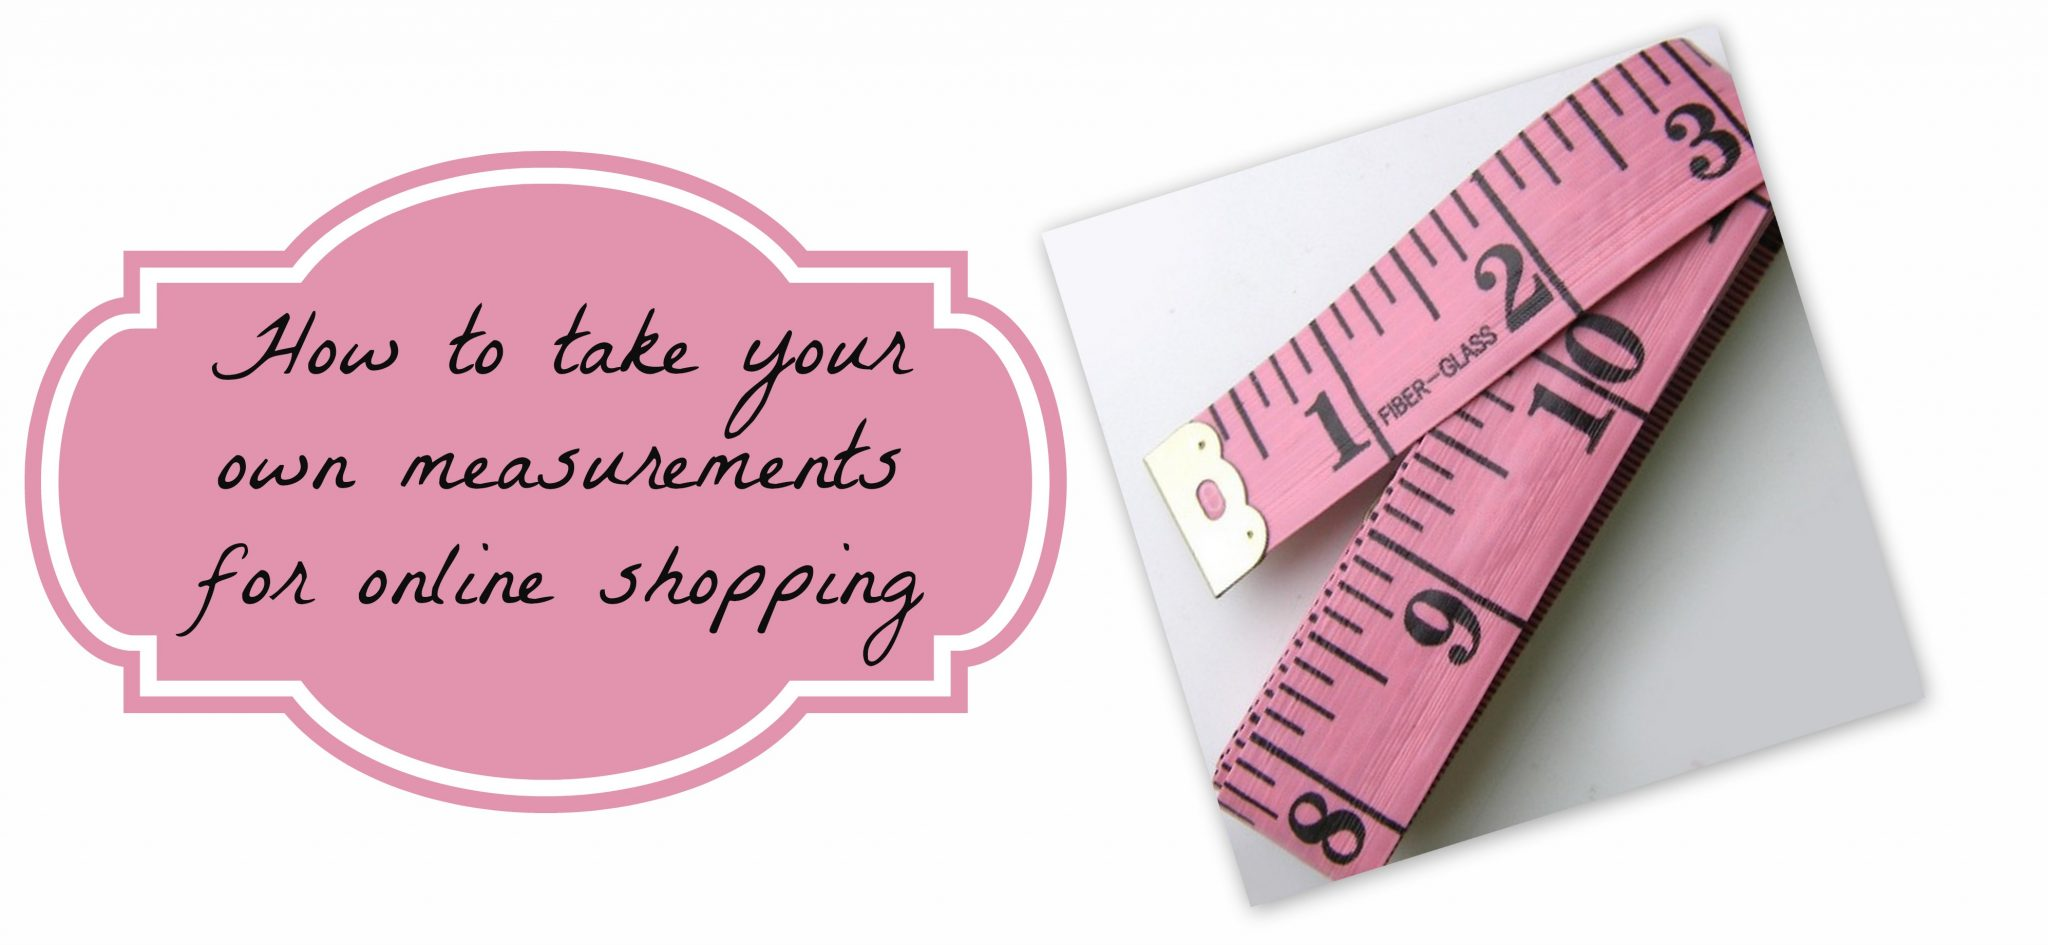 How To: Take your own measurements for online shopping